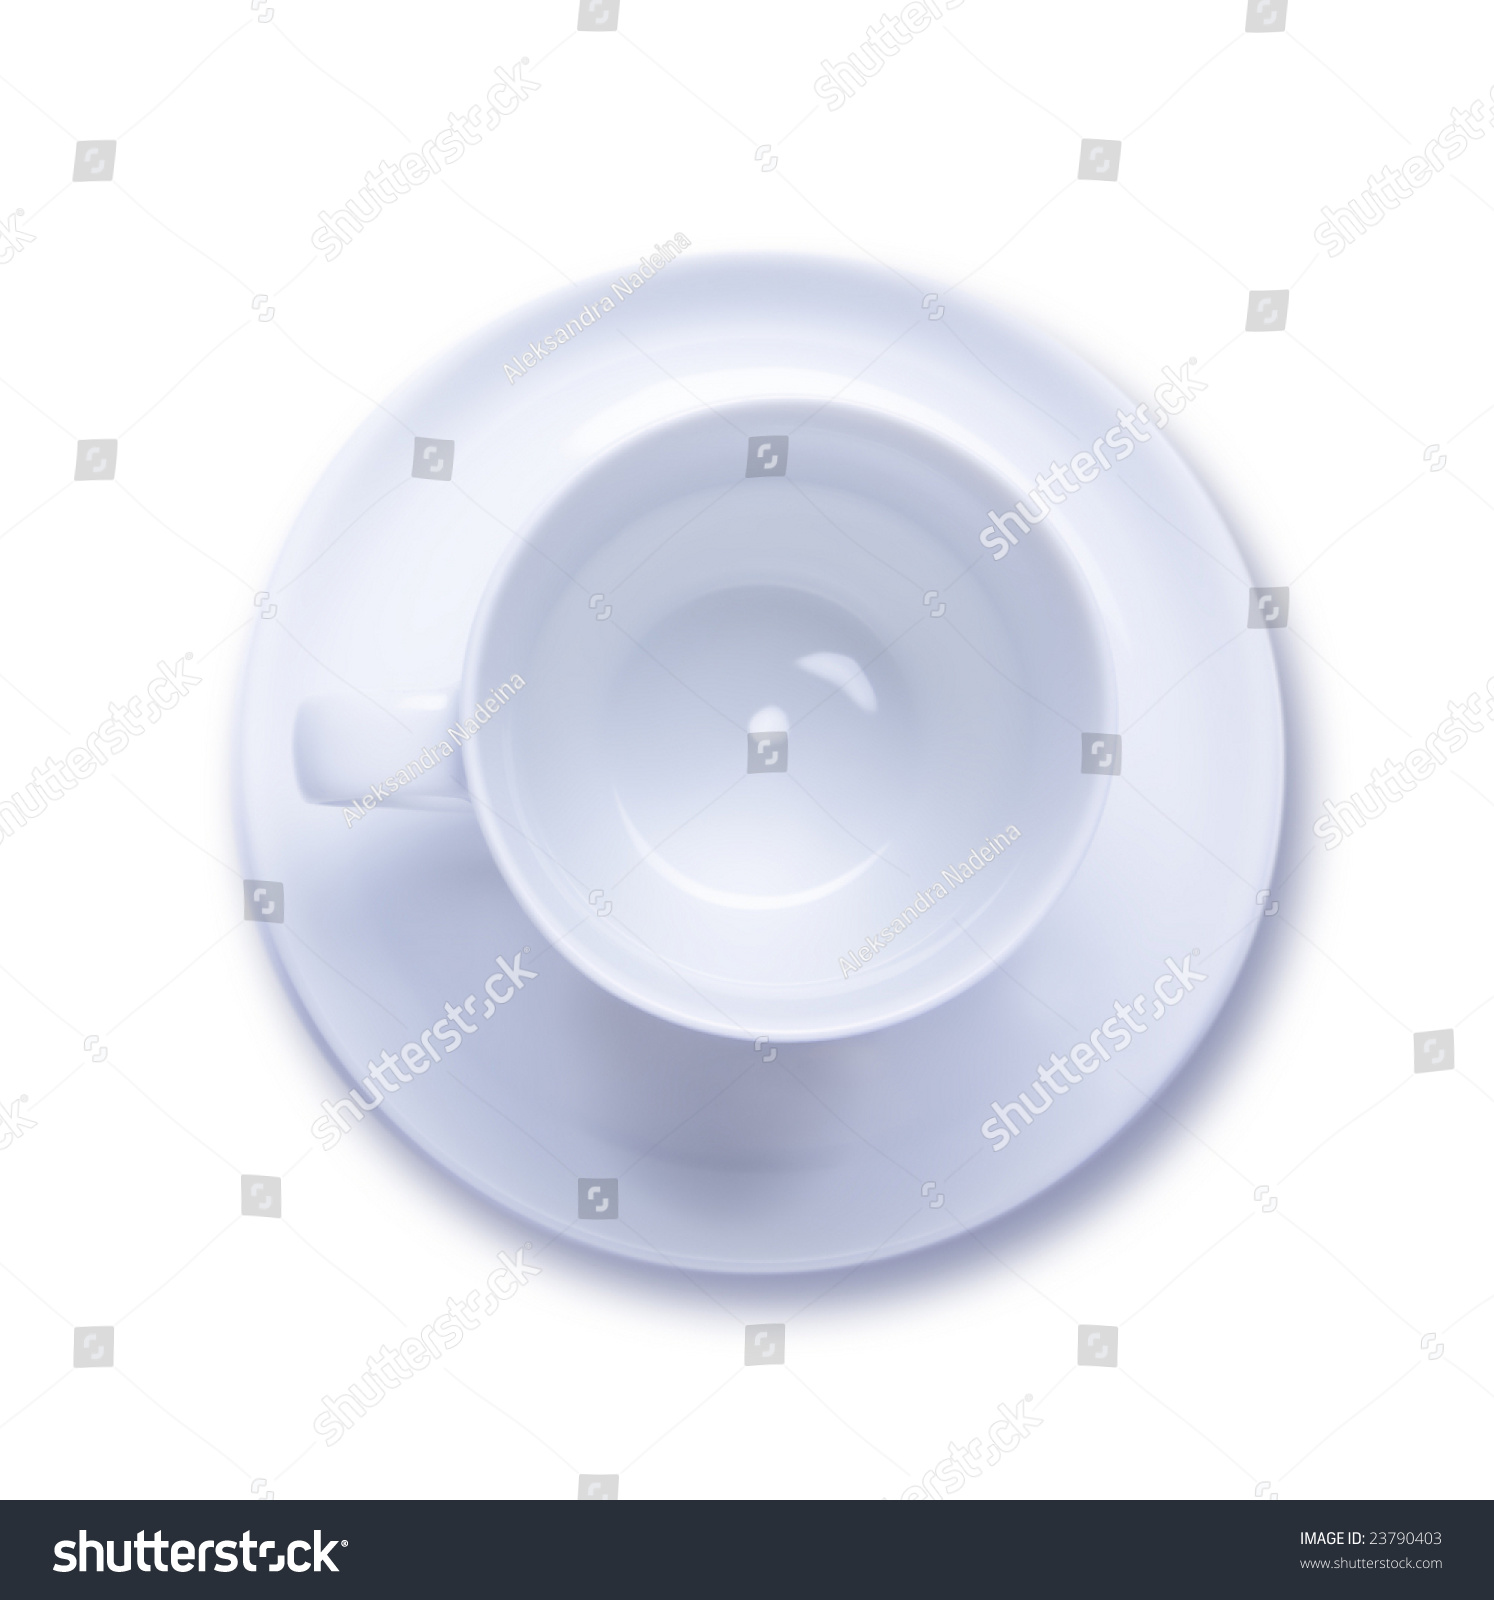 Empty Cup Top : Empty coffee cup top view stock photo shutterstock